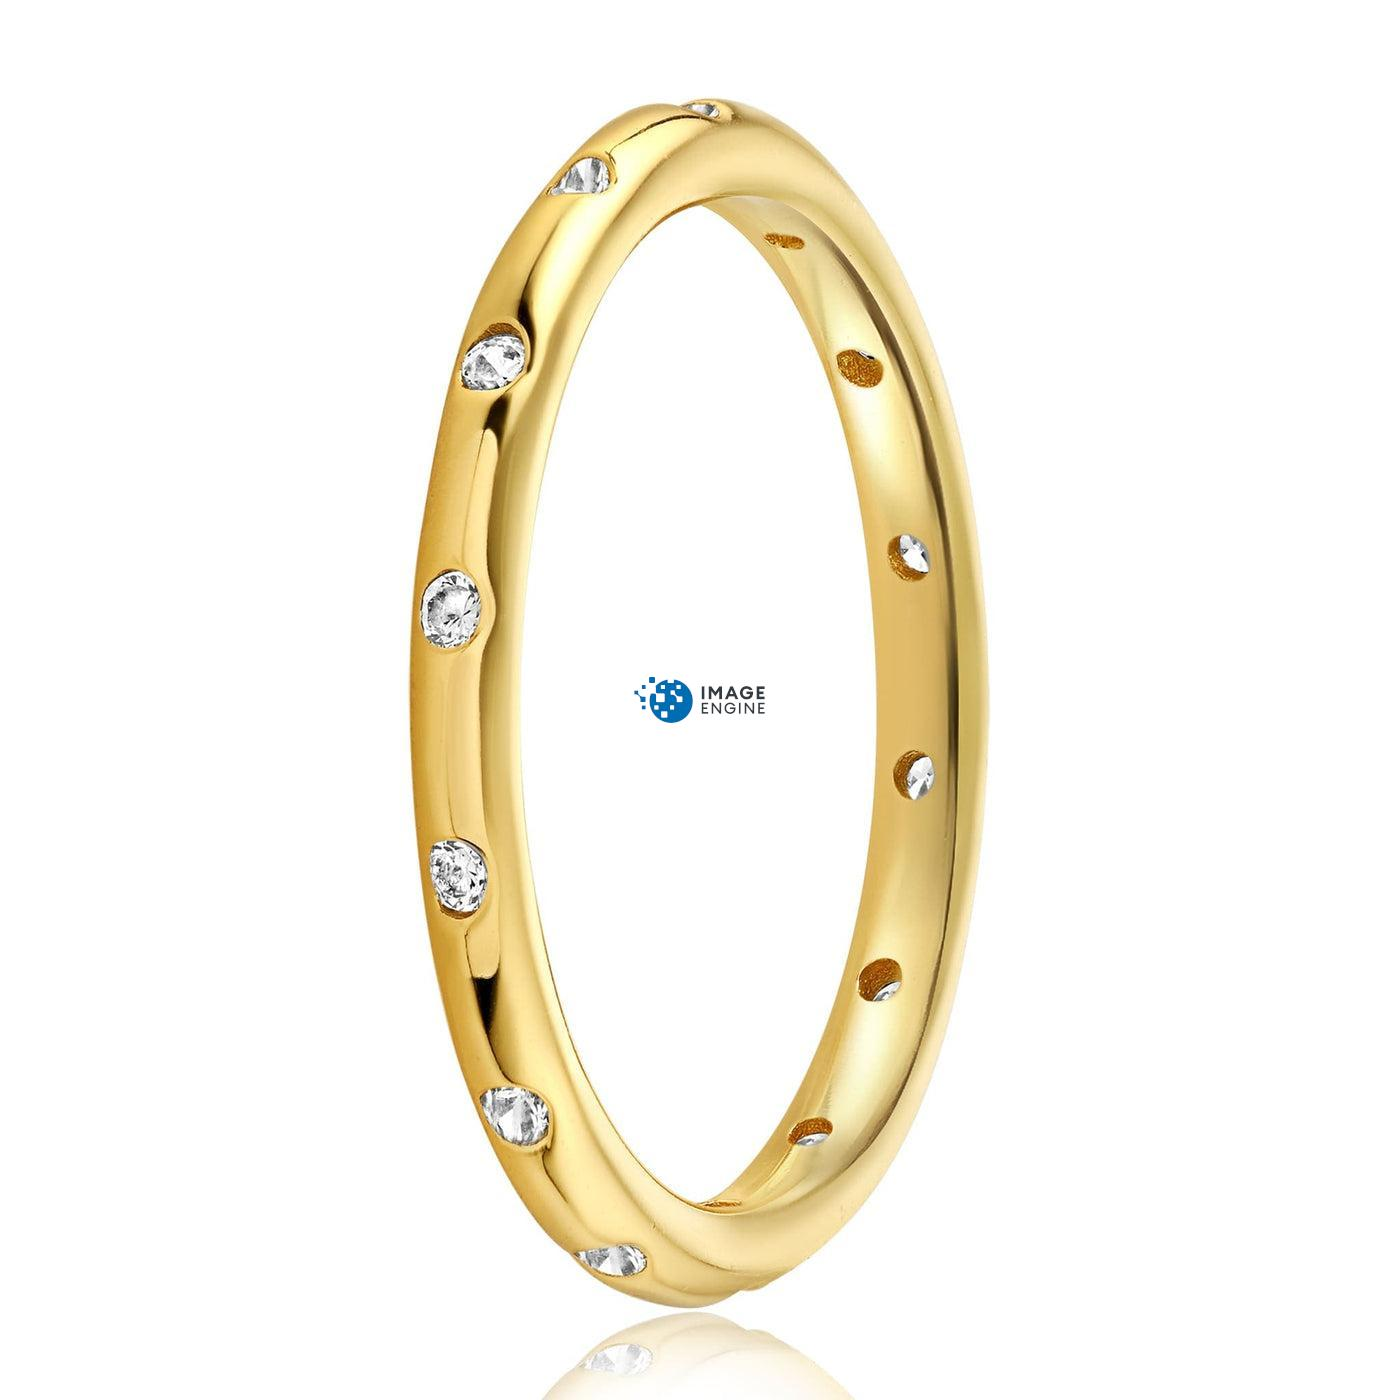 Droplet Ring - Side View - 18K Yellow Gold Vermeil